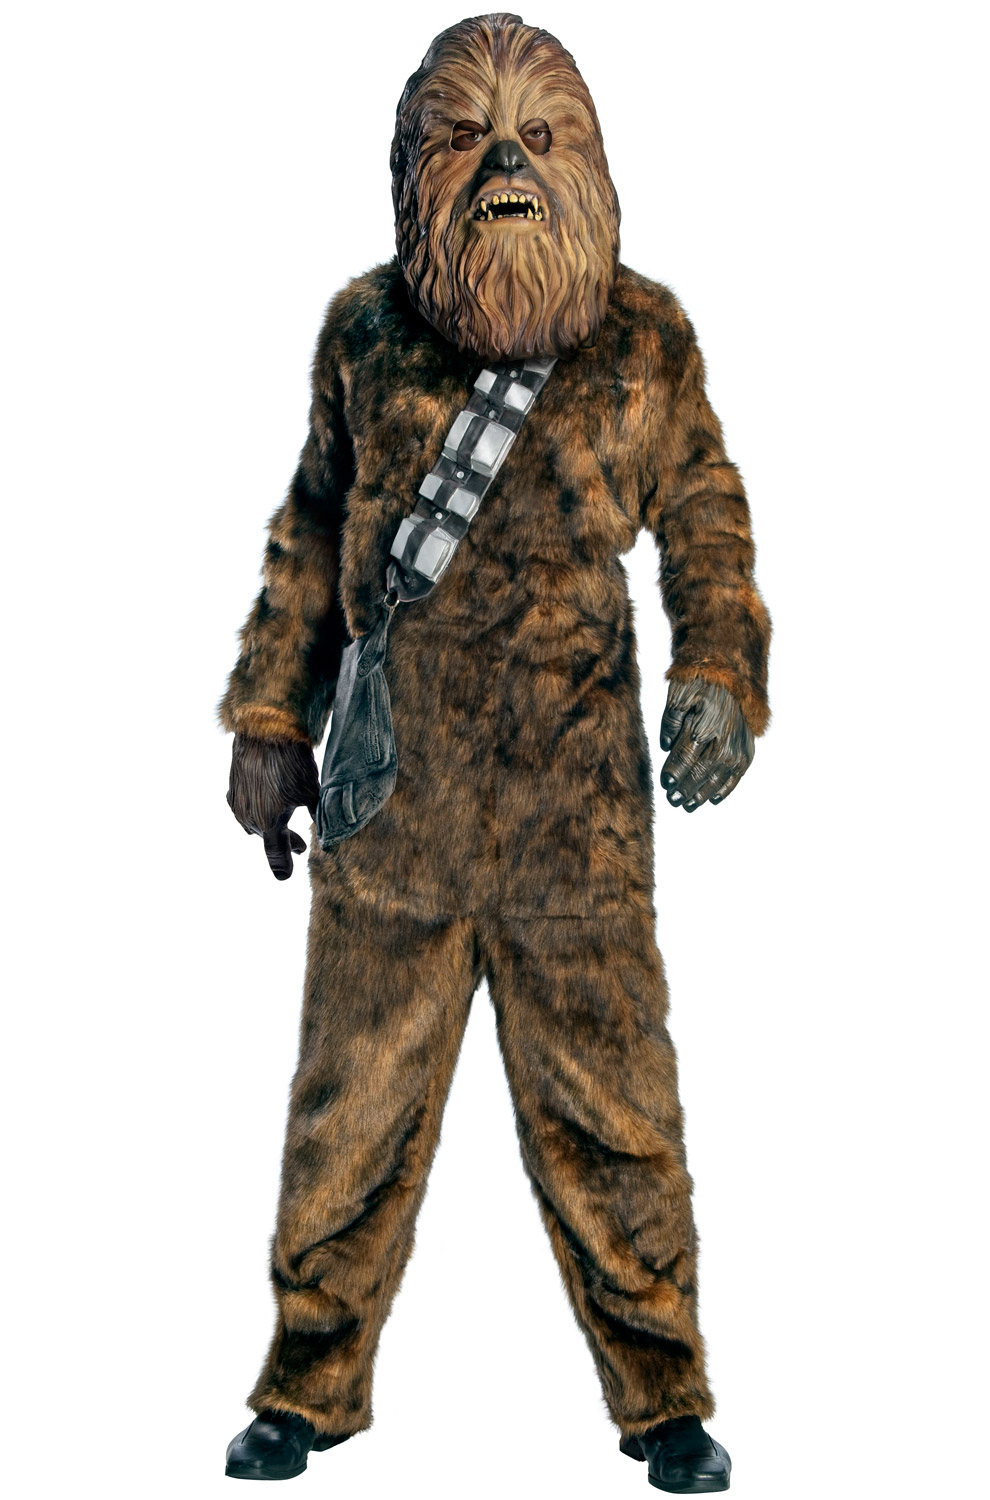 Click Here to buy Star Wars Deluxe Chewbacca Adult Costume from Pure Costumes